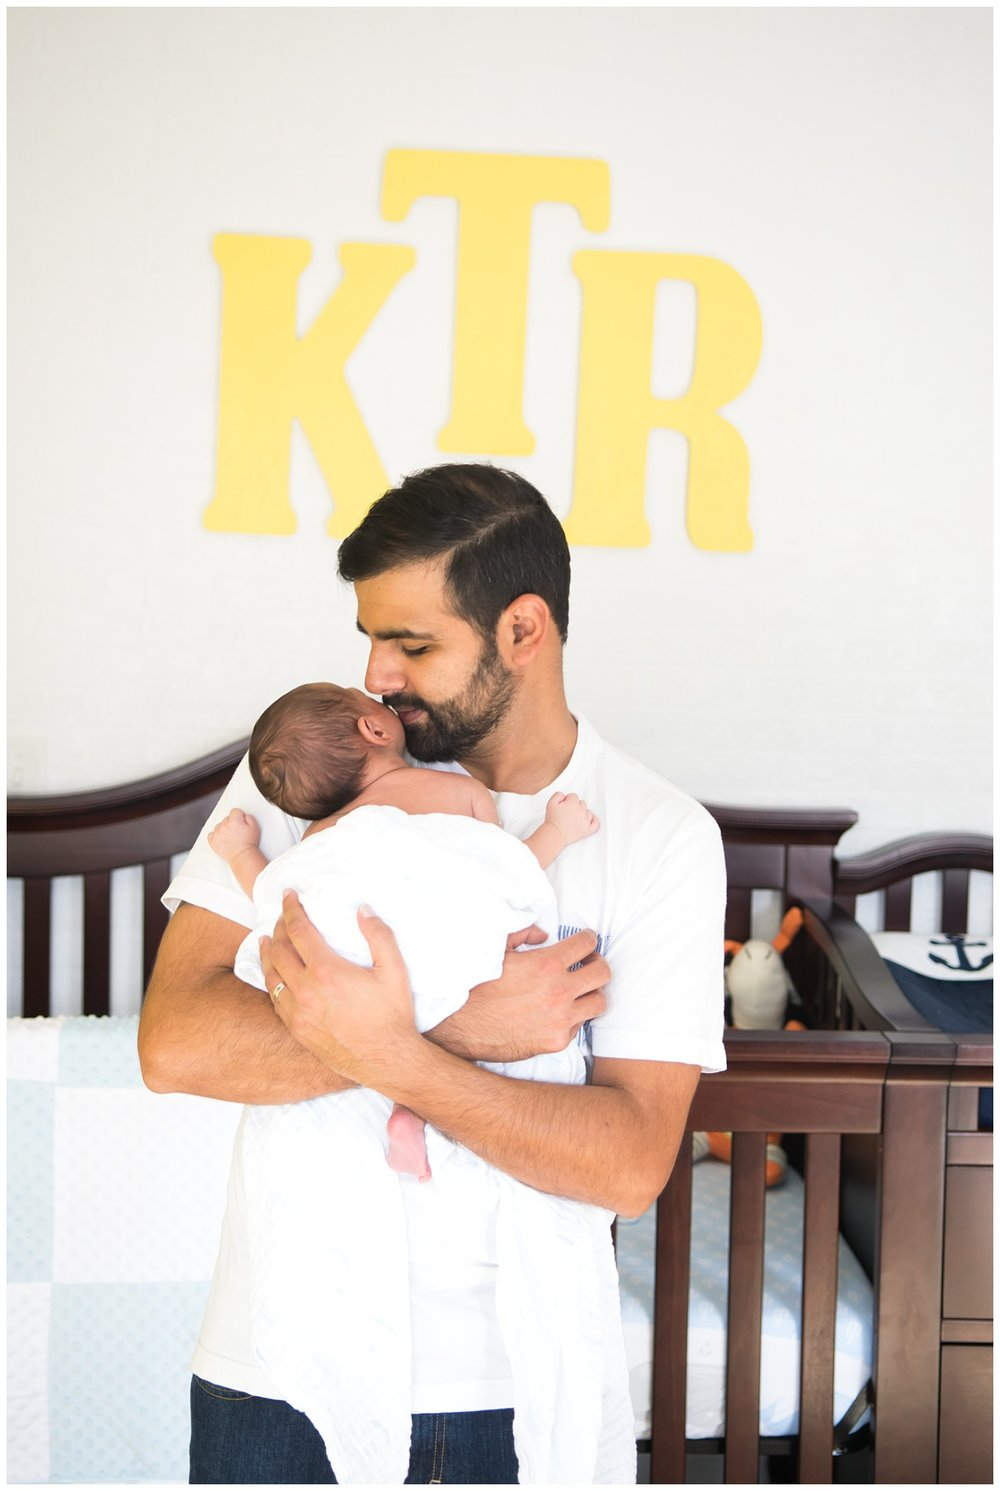 this is an image of a father holding his newborn baby boy and standing in front of the baby's crib. the session took place in decatur georgia